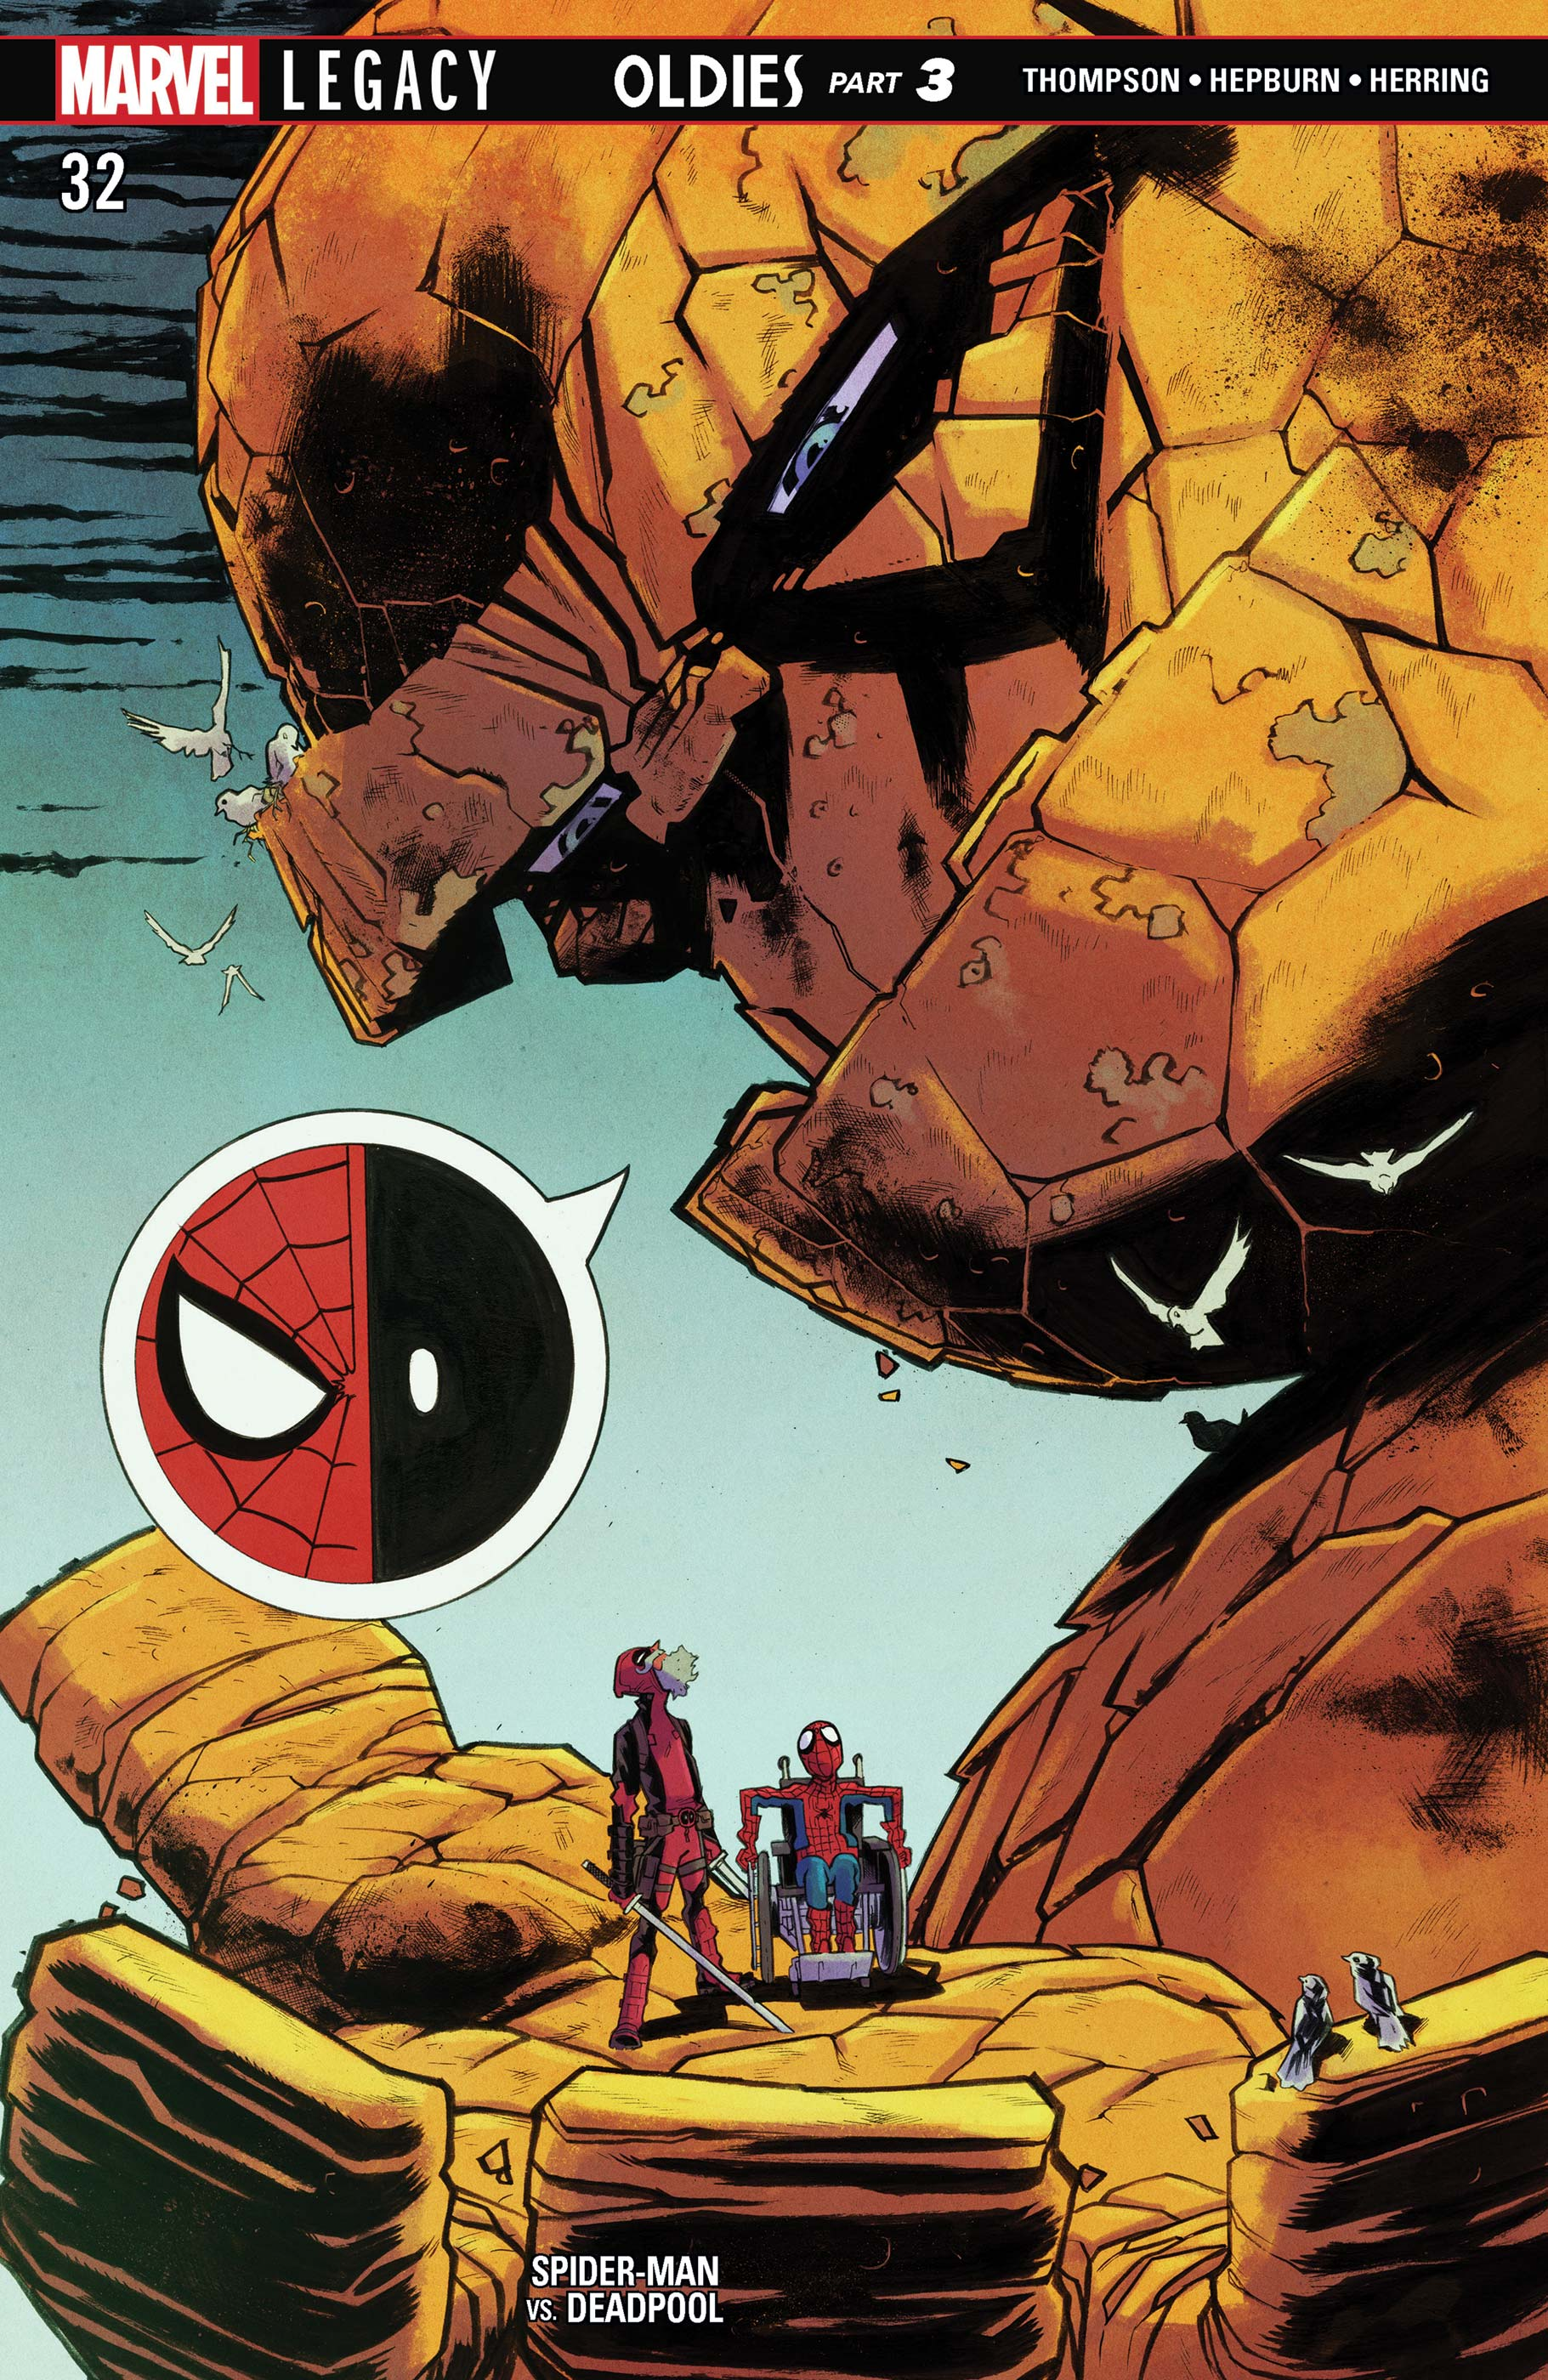 Man 32 Indicted In Alleged Misconduct With 14 Year Old: Spider-Man/Deadpool (2016) #32